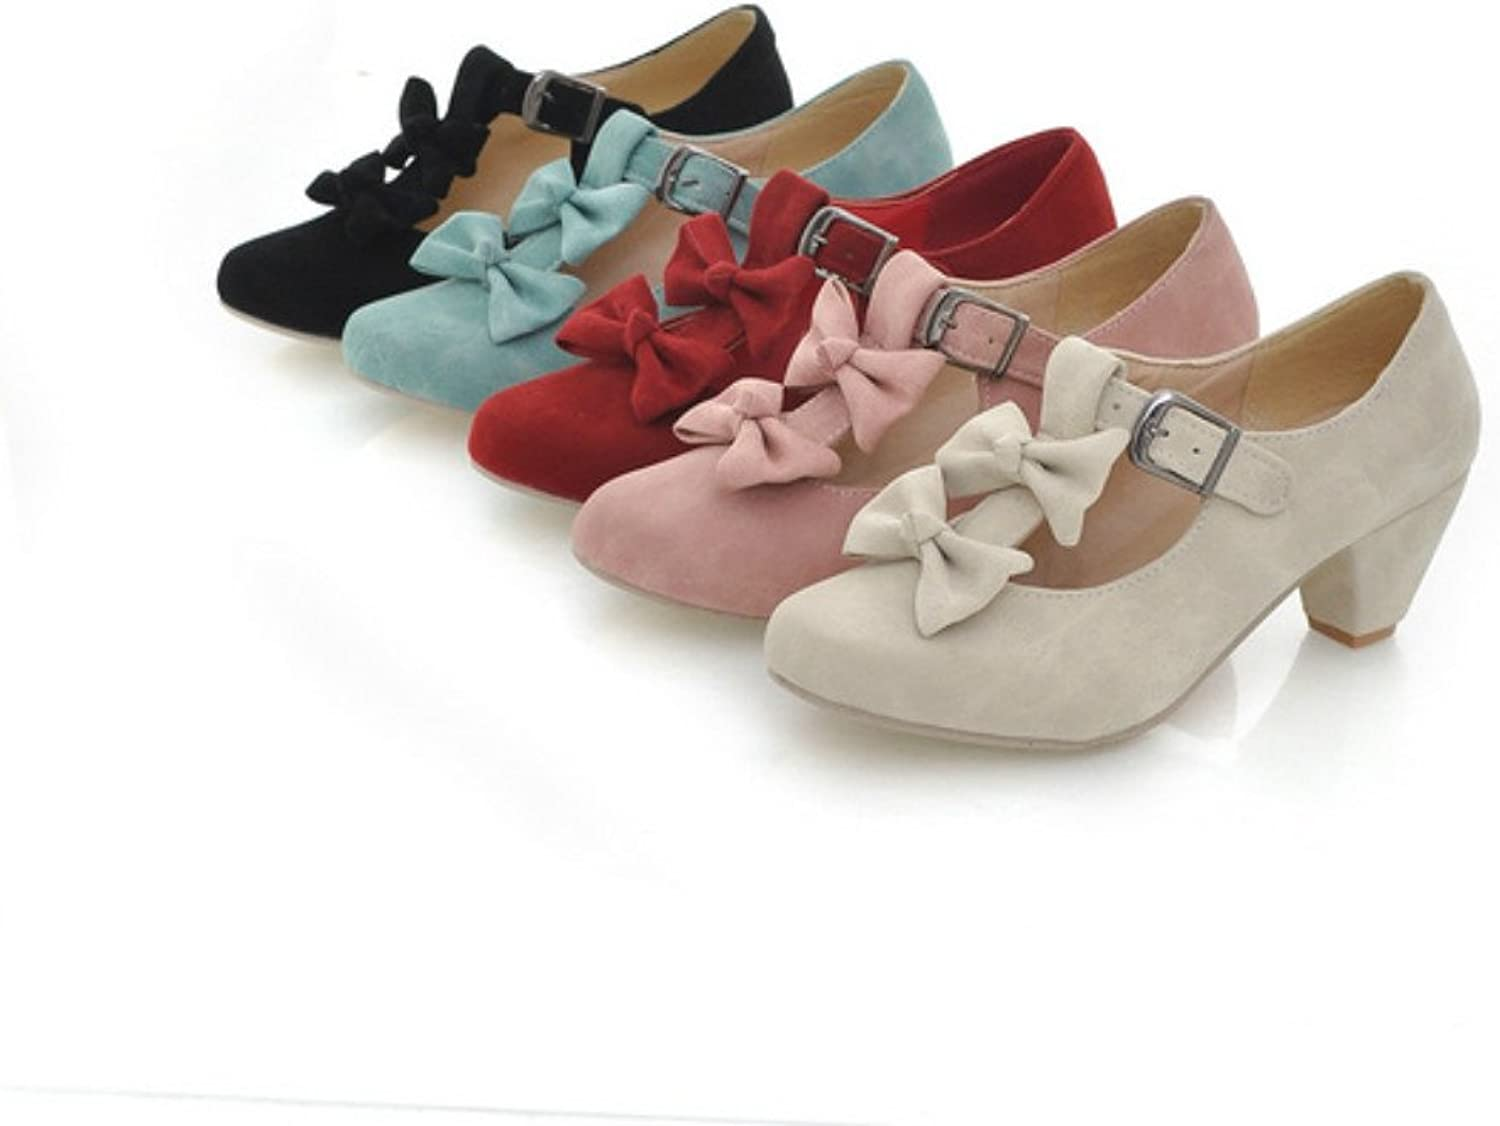 MFairy Woman's Low Heel Vintage Lolita shoes Cute Bowknot Mary Jane shoes